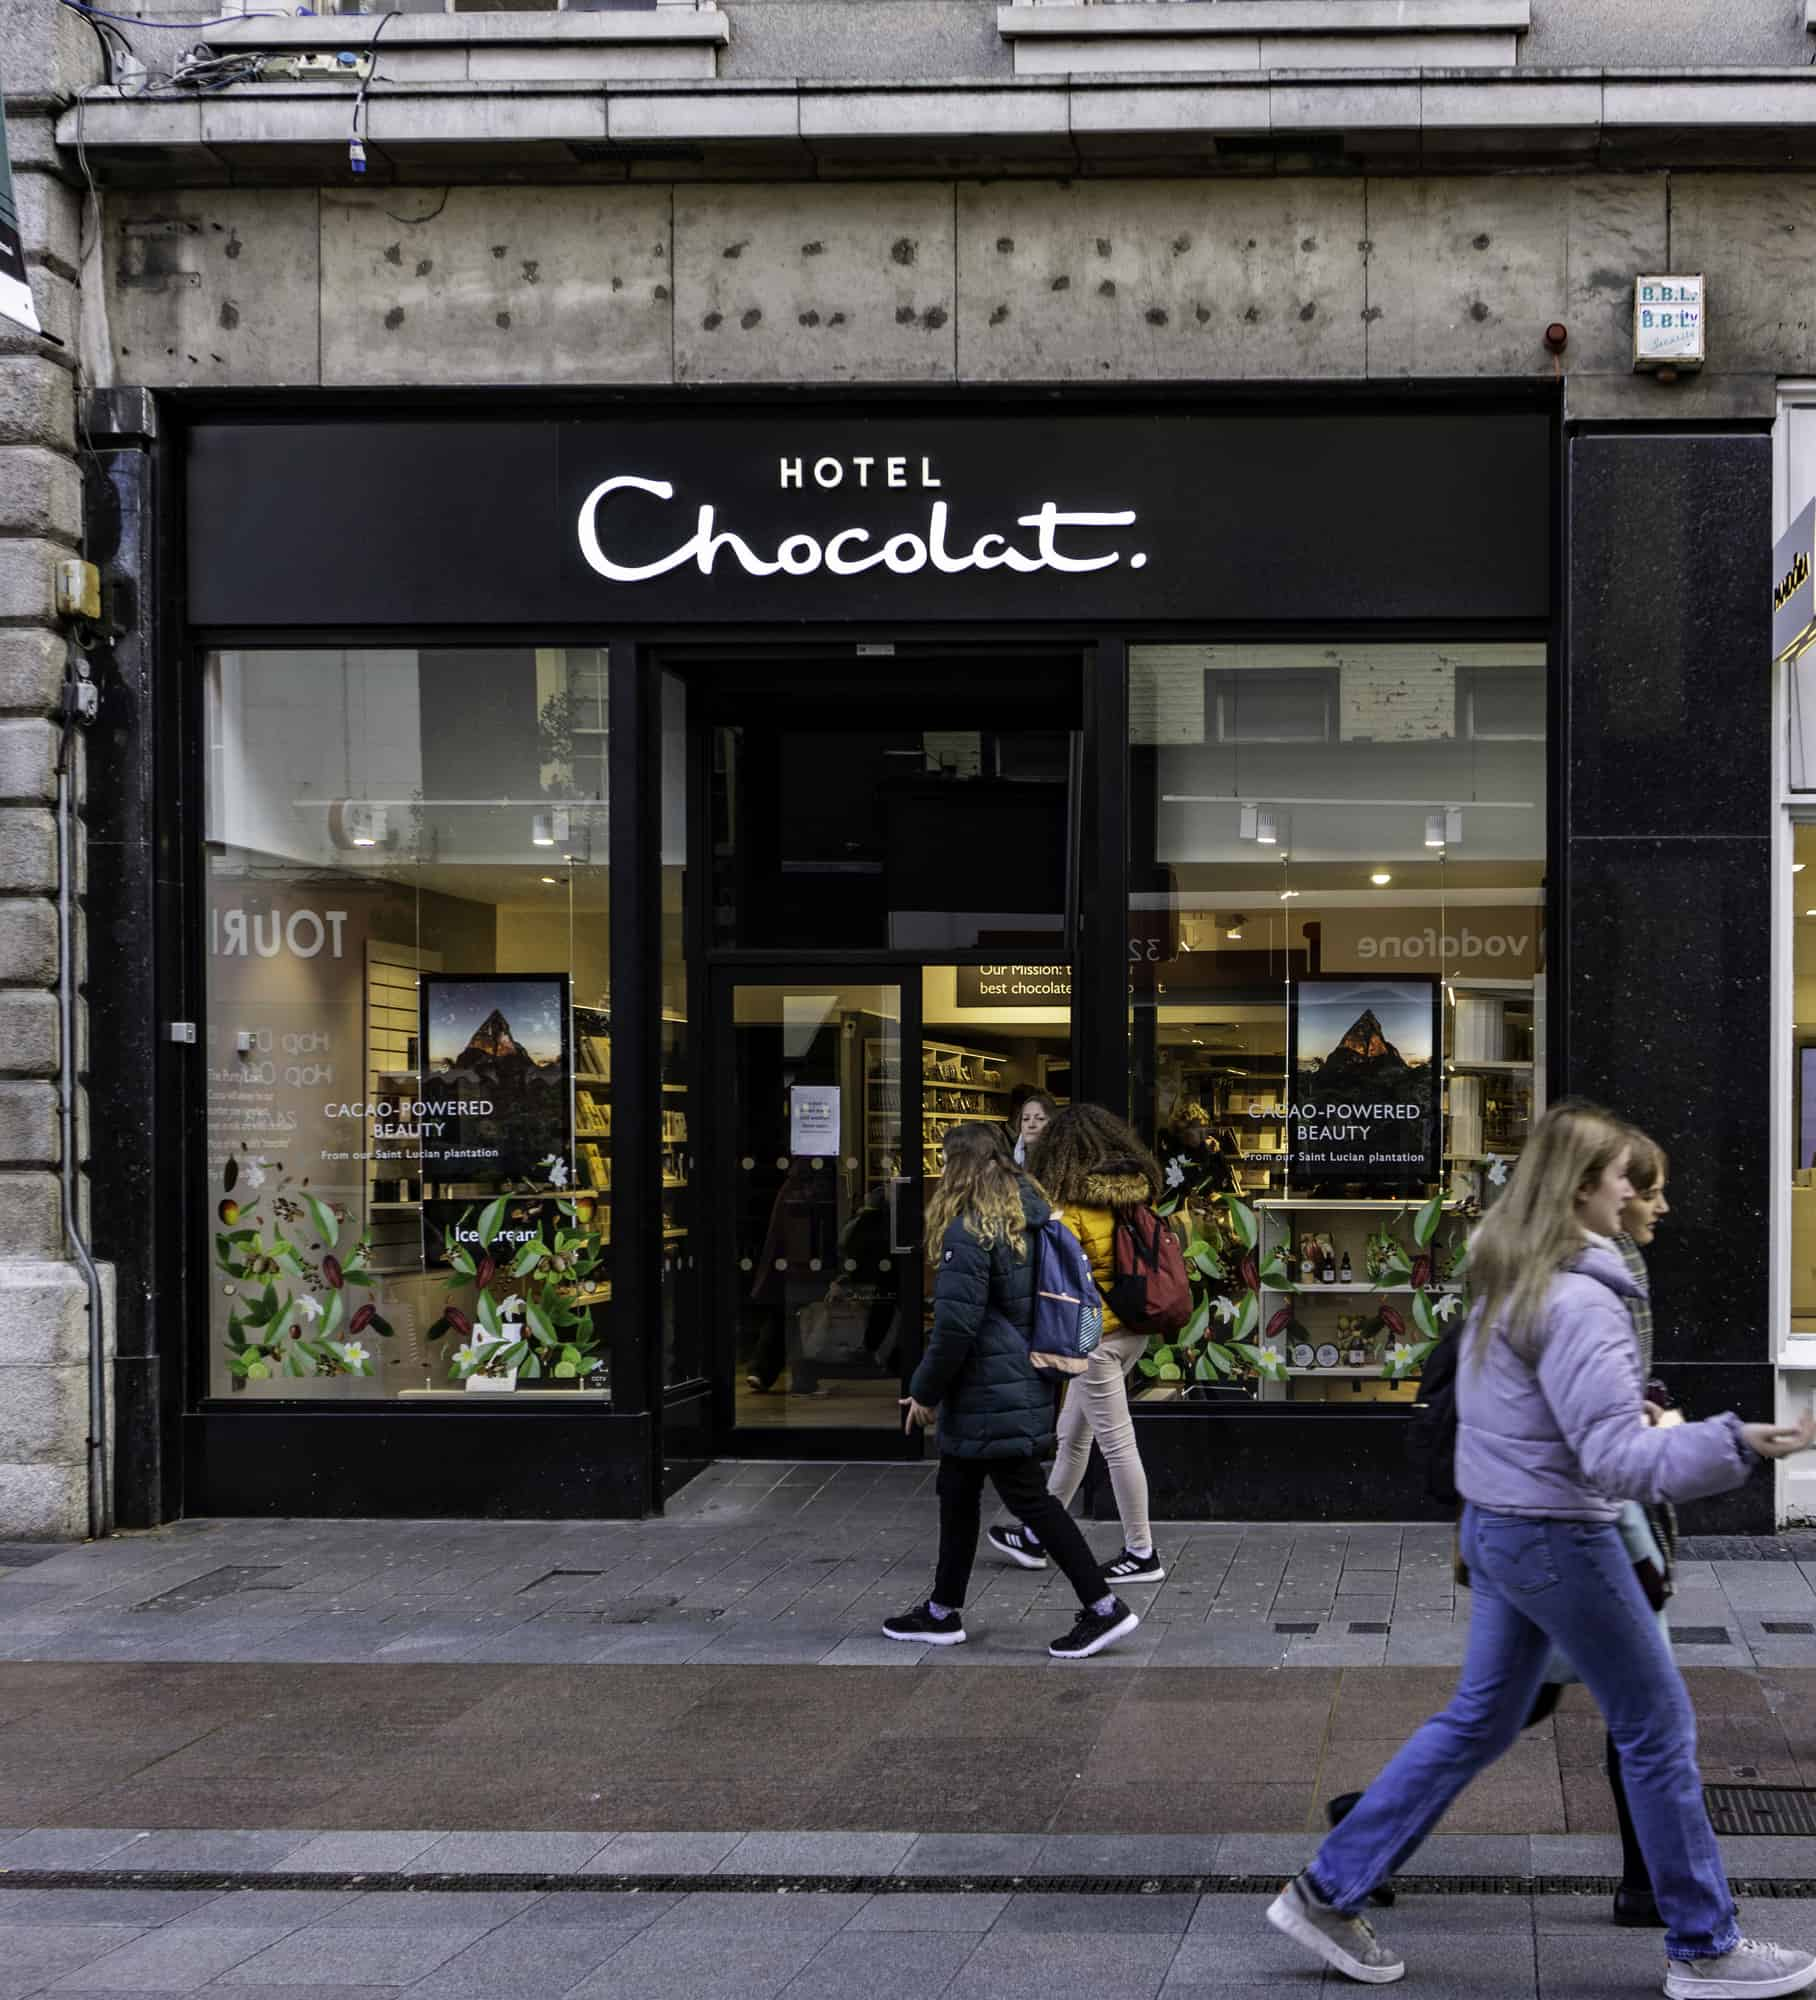 What can we learn from Hotel Chocolat?